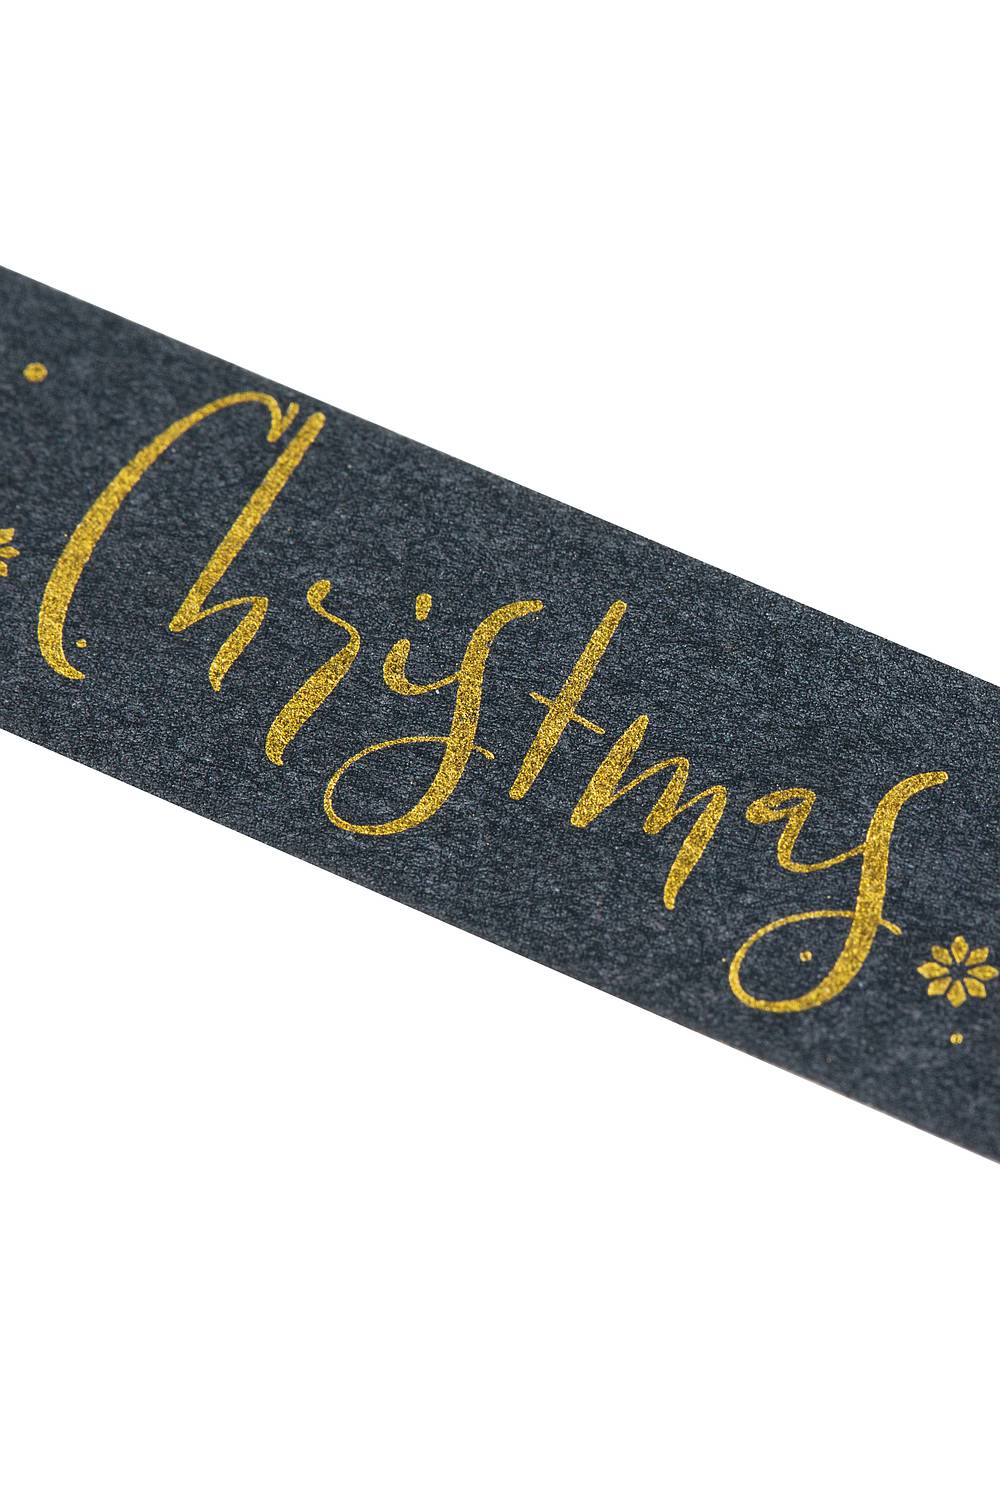 Washi Tape - Weihnachten, gold